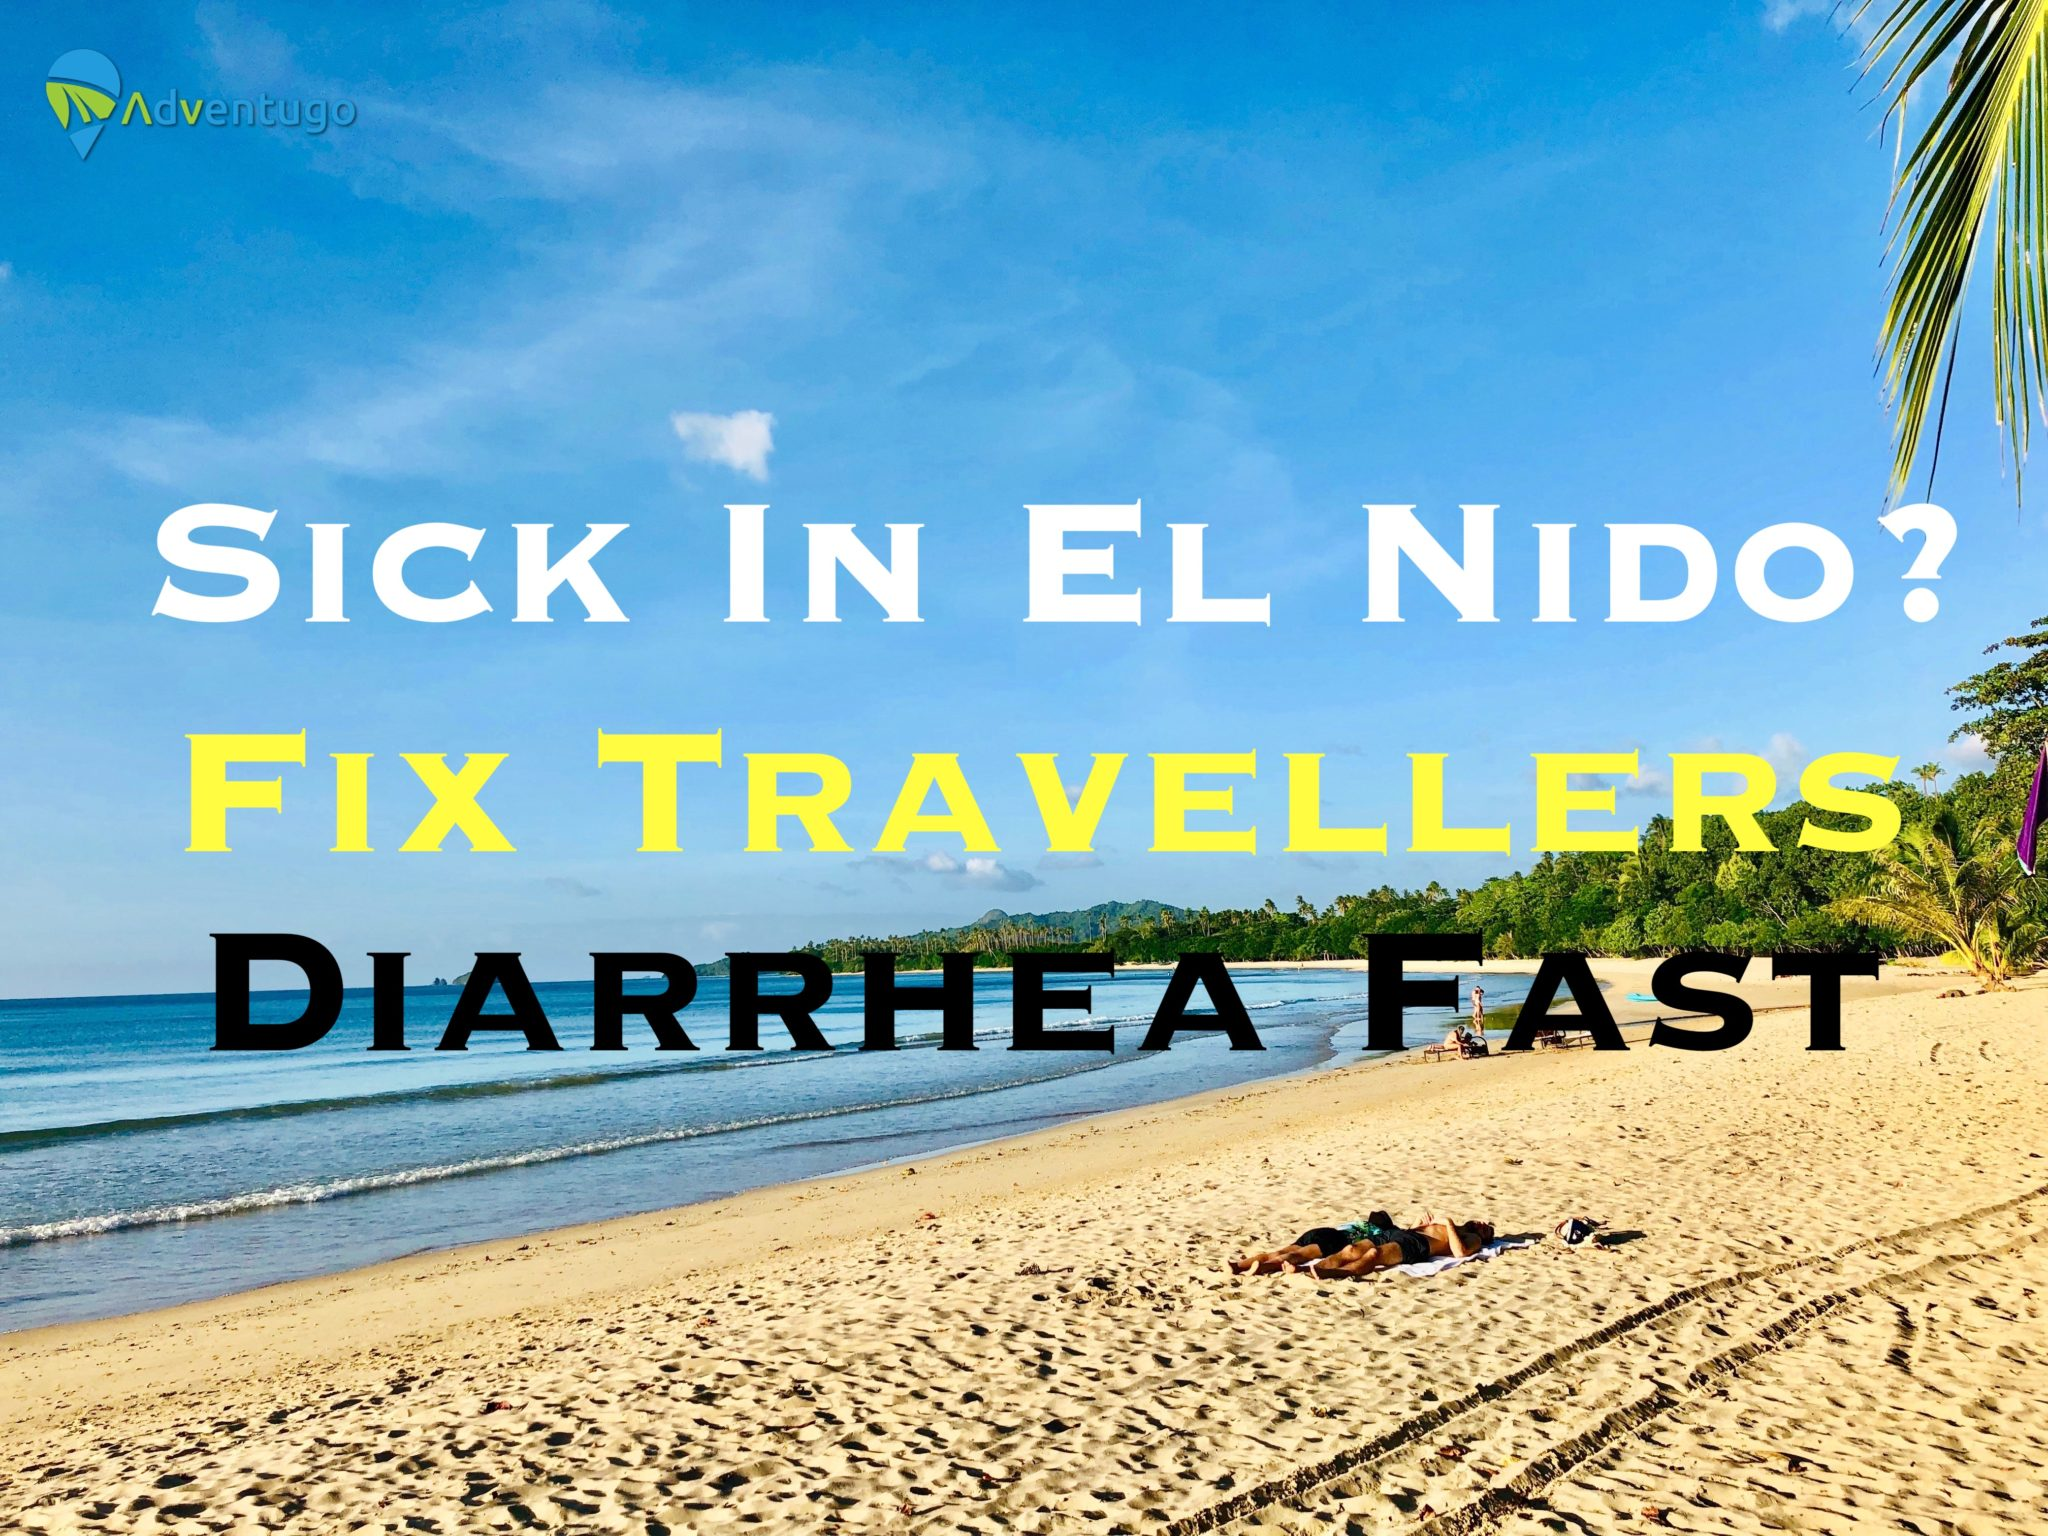 How To Fix Travellers Diarrhea fast in EL Nido